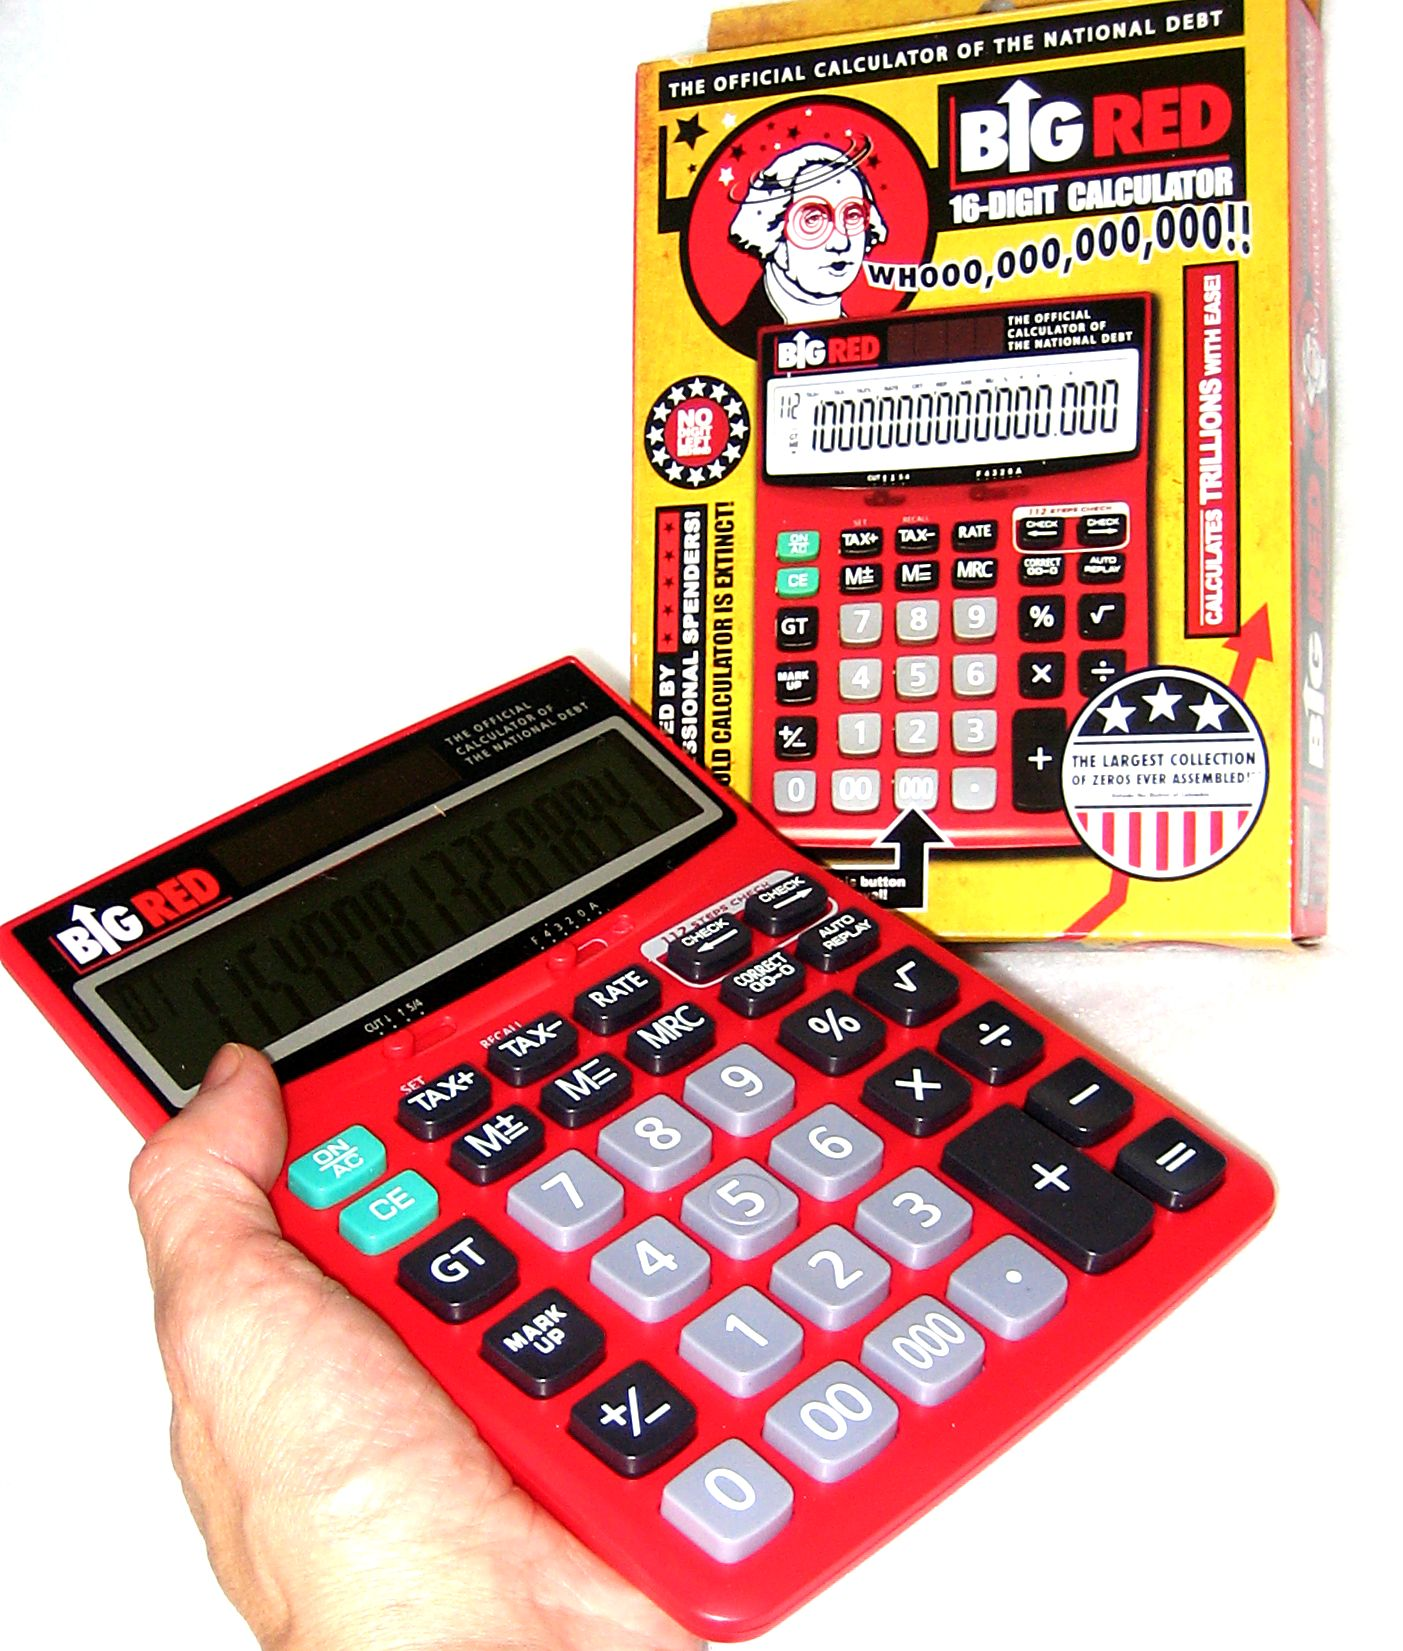 Big Red Calculator Is a hand-held desk calculator